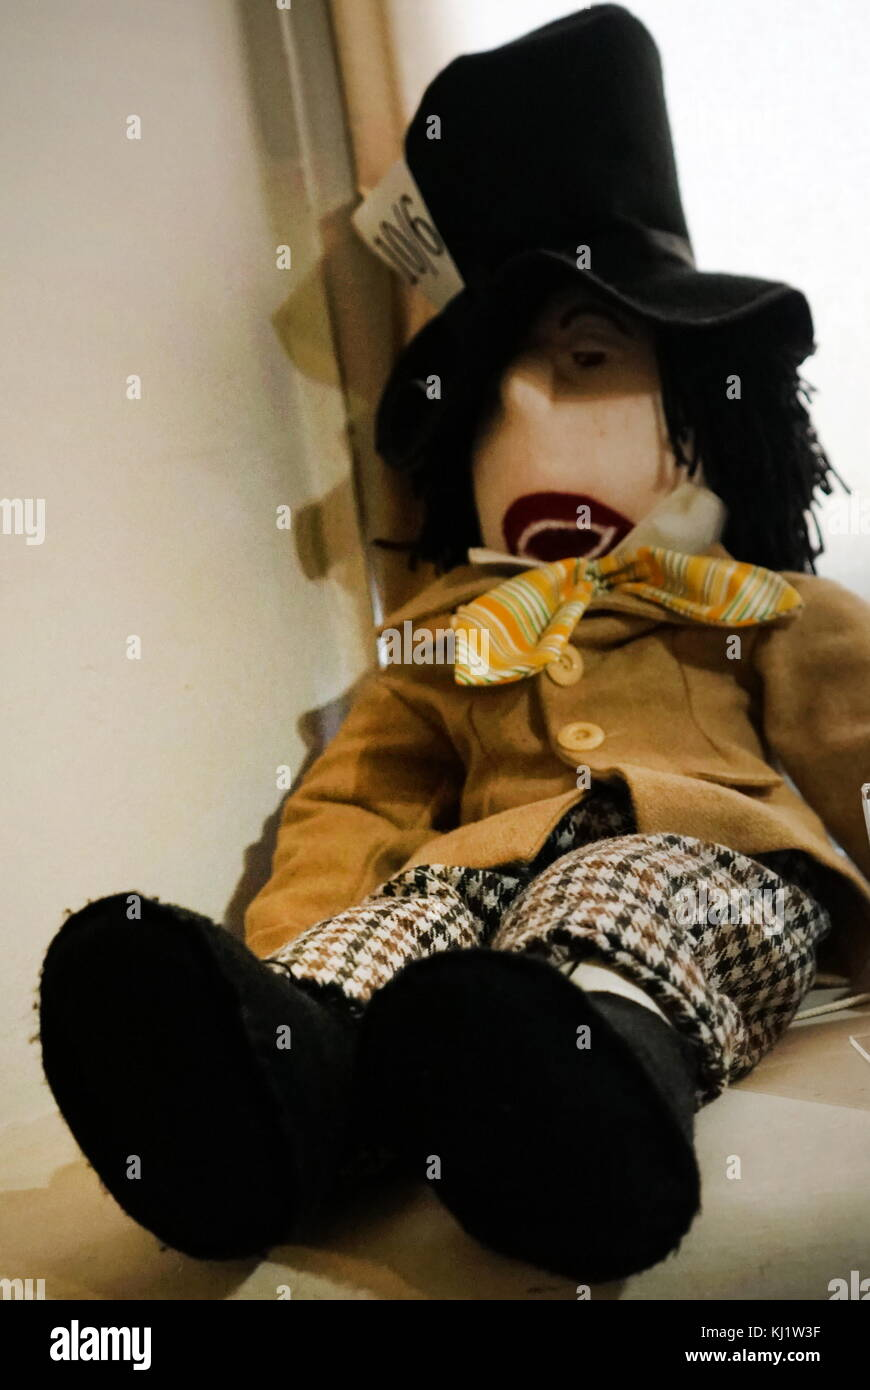 Stuffed 'Mad Hatter' doll. The Mad Hatter is a character from the novel 'Alice's Adventures in Wonderland' - Stock Image